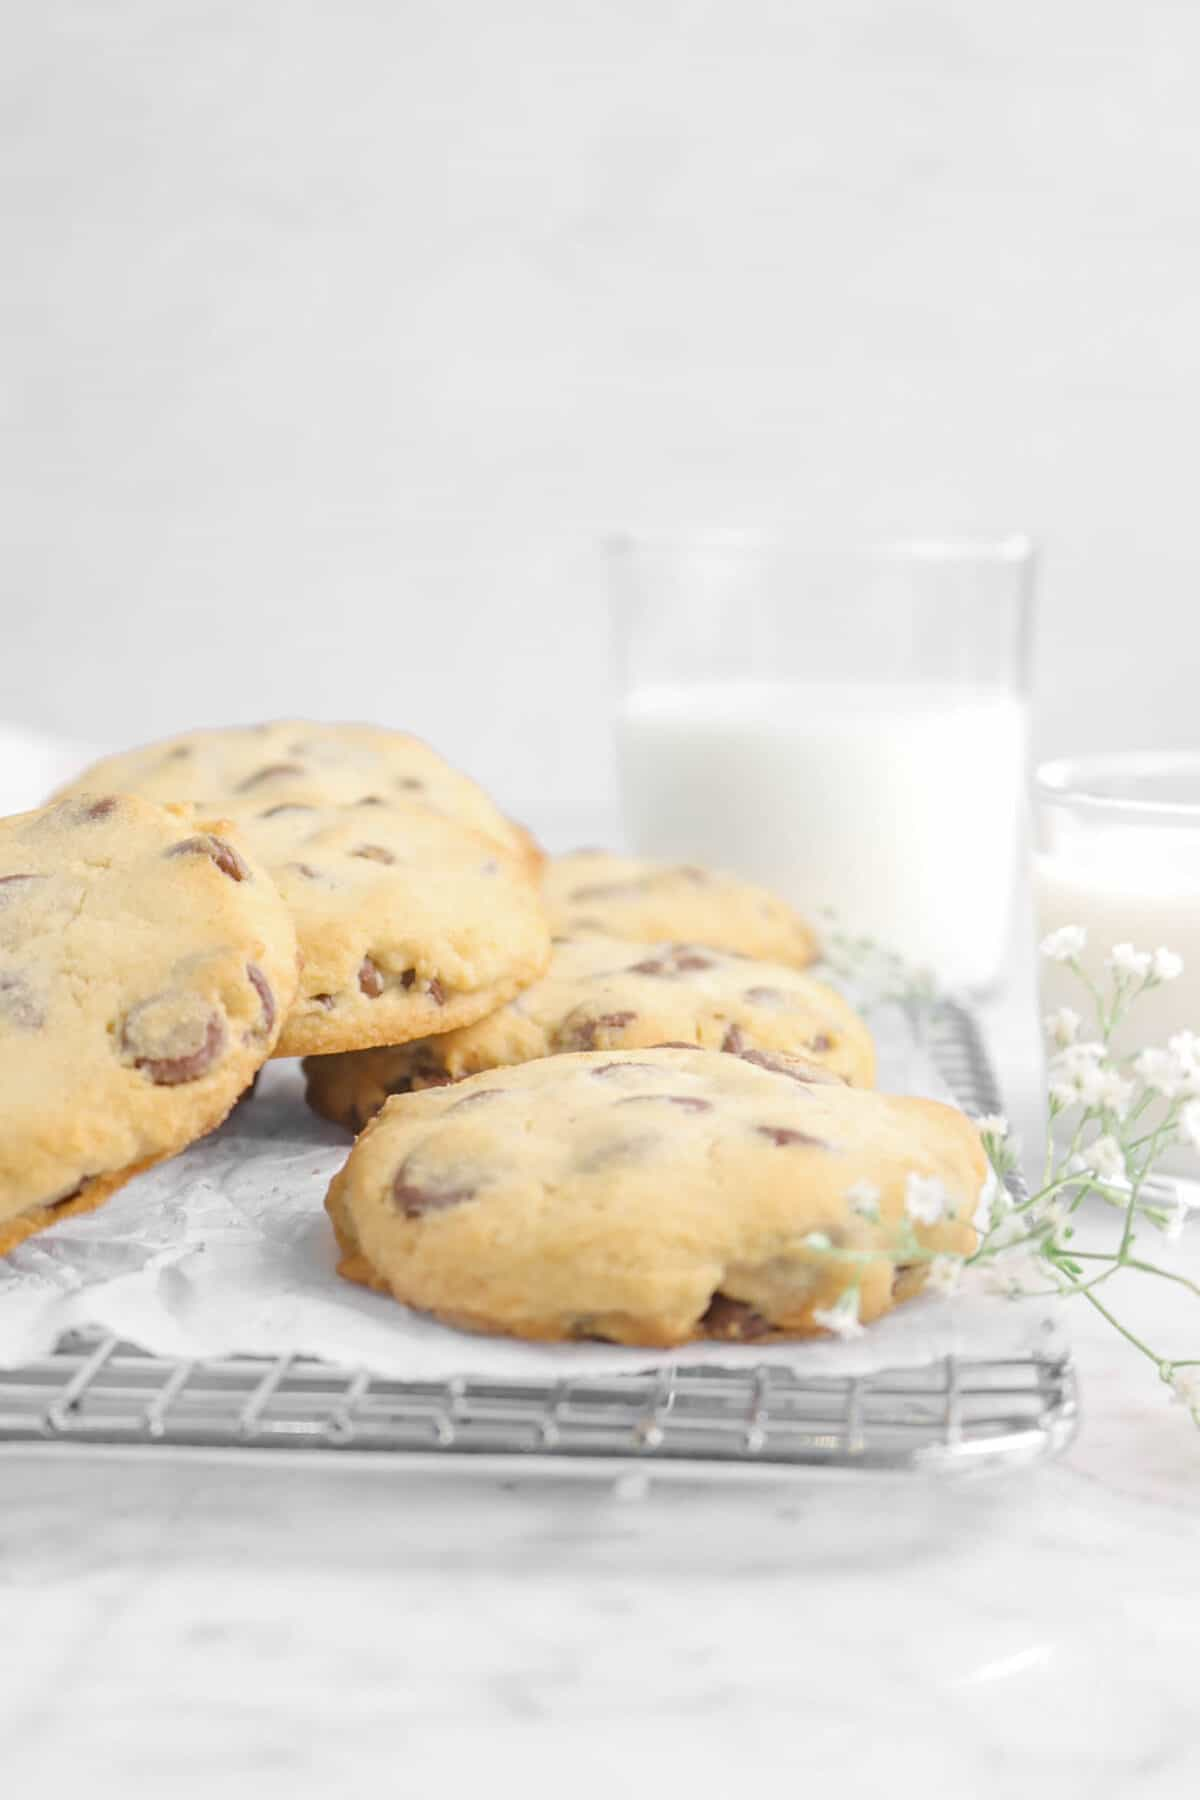 cookies on a wire cooling rack with milk and flowers